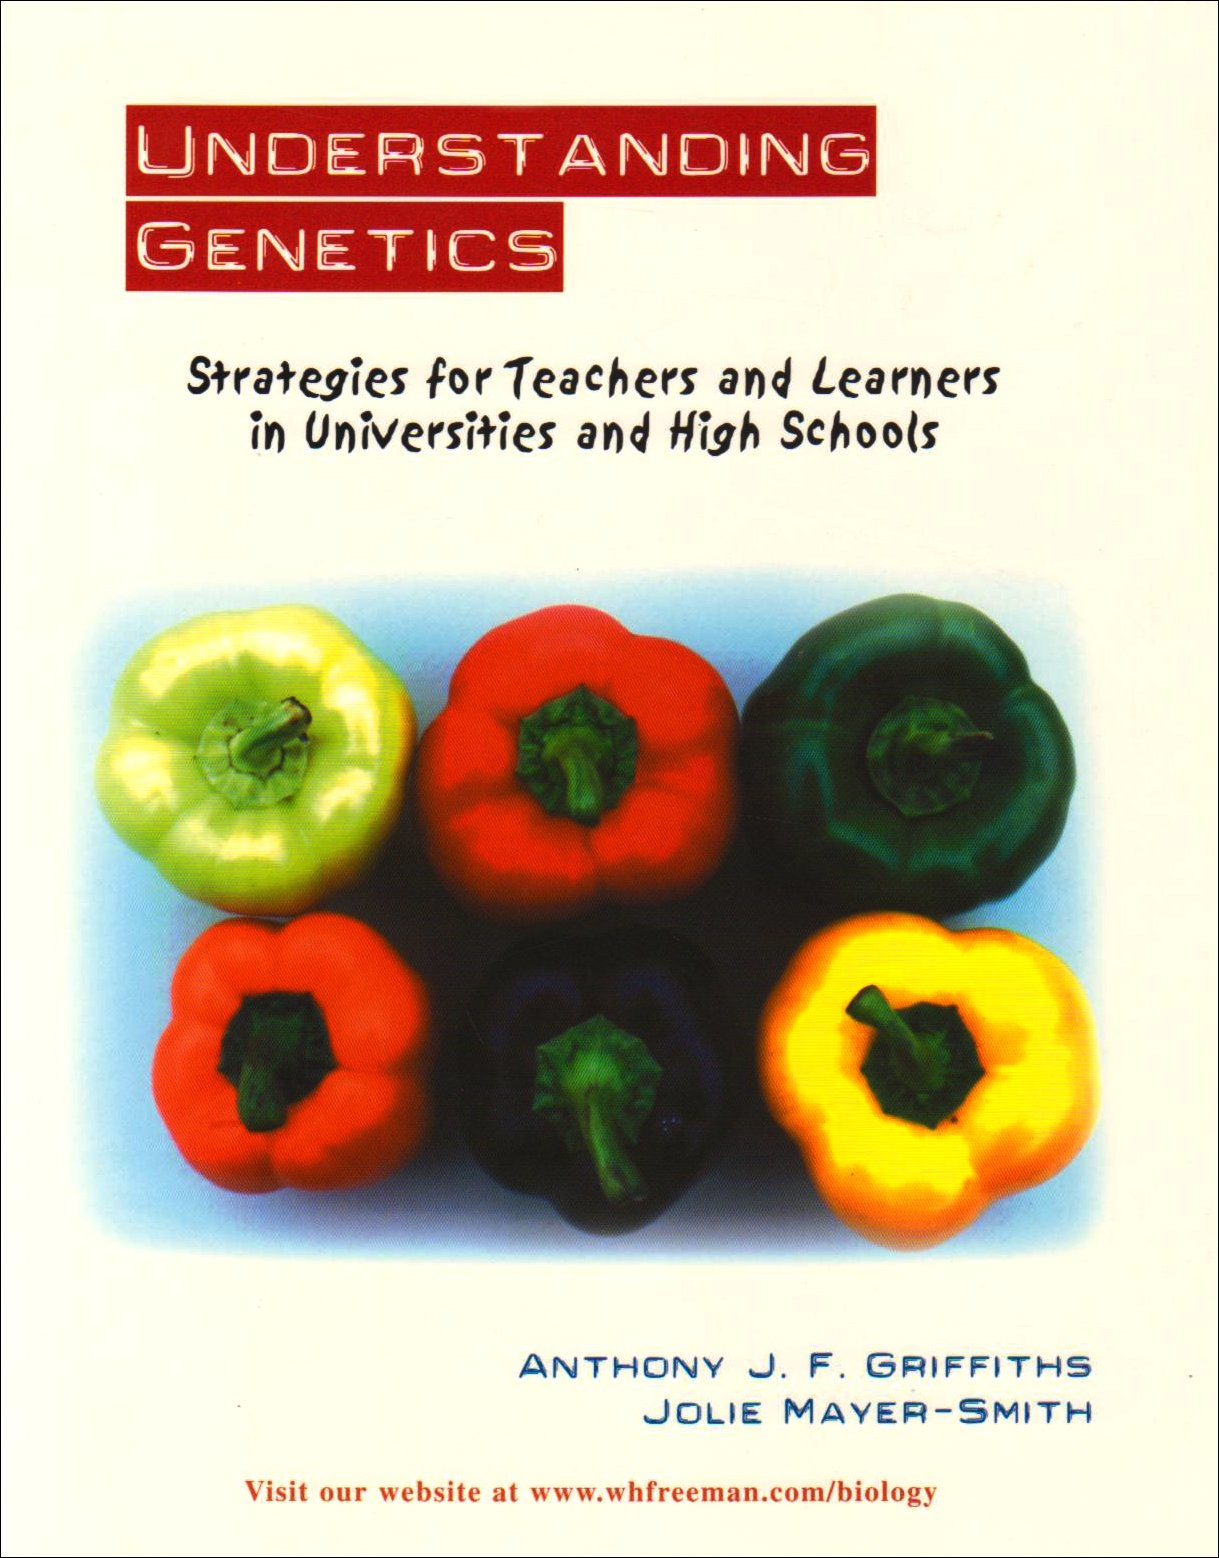 Download Understanding Genetics: Strategies for Teachers and Learners in Universities and High Schools pdf